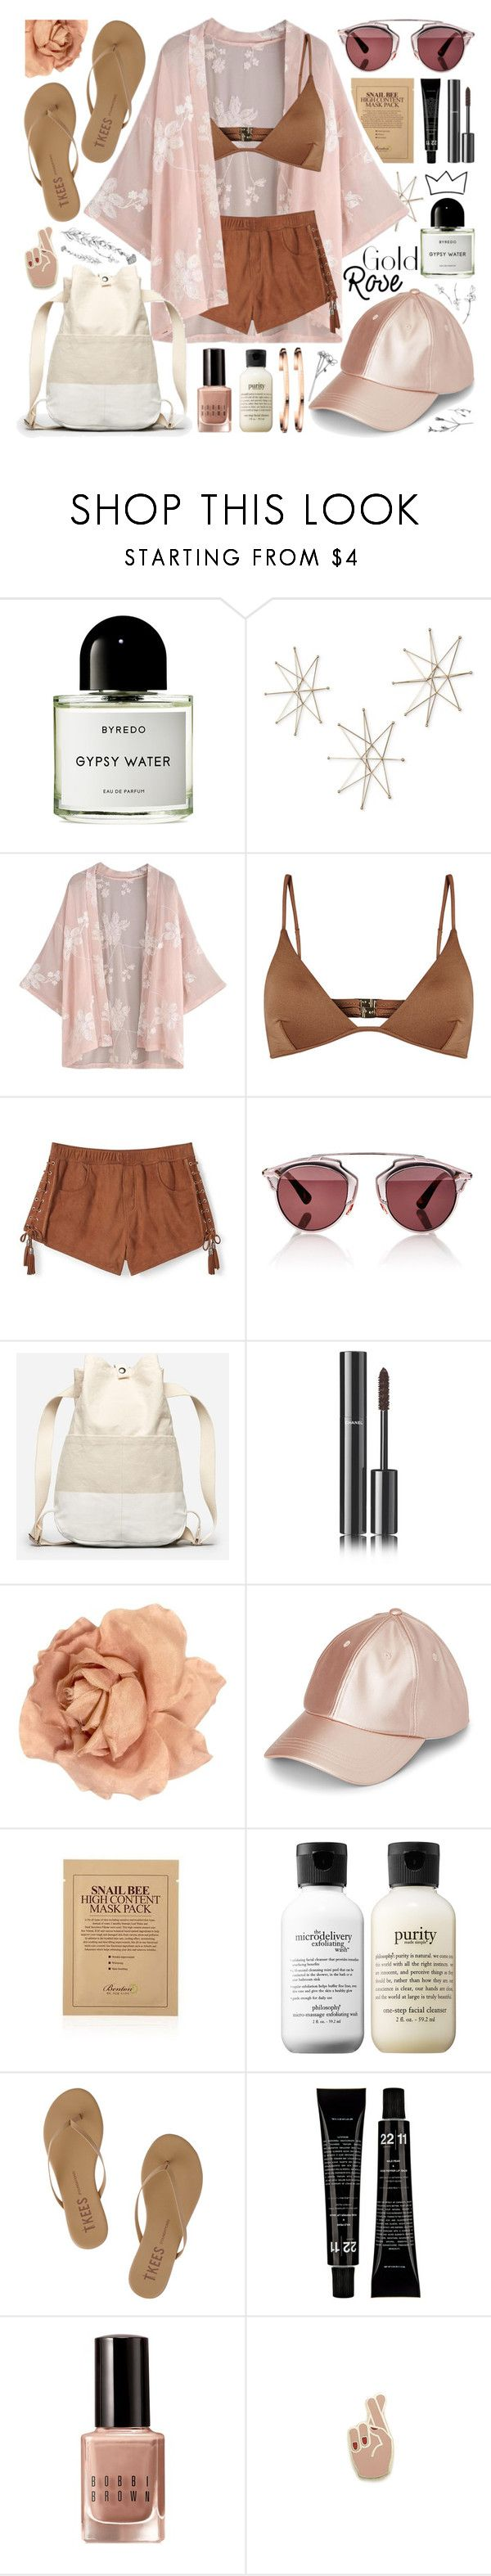 """beach life kimono bikini // #165"" by jk802 ❤ liked on Polyvore featuring Byredo, Uttermost, Melissa Odabash, Rebecca Minkoff, Christian Dior, Everlane, Chanel, philosophy, Tkees and Bobbi Brown Cosmetics"